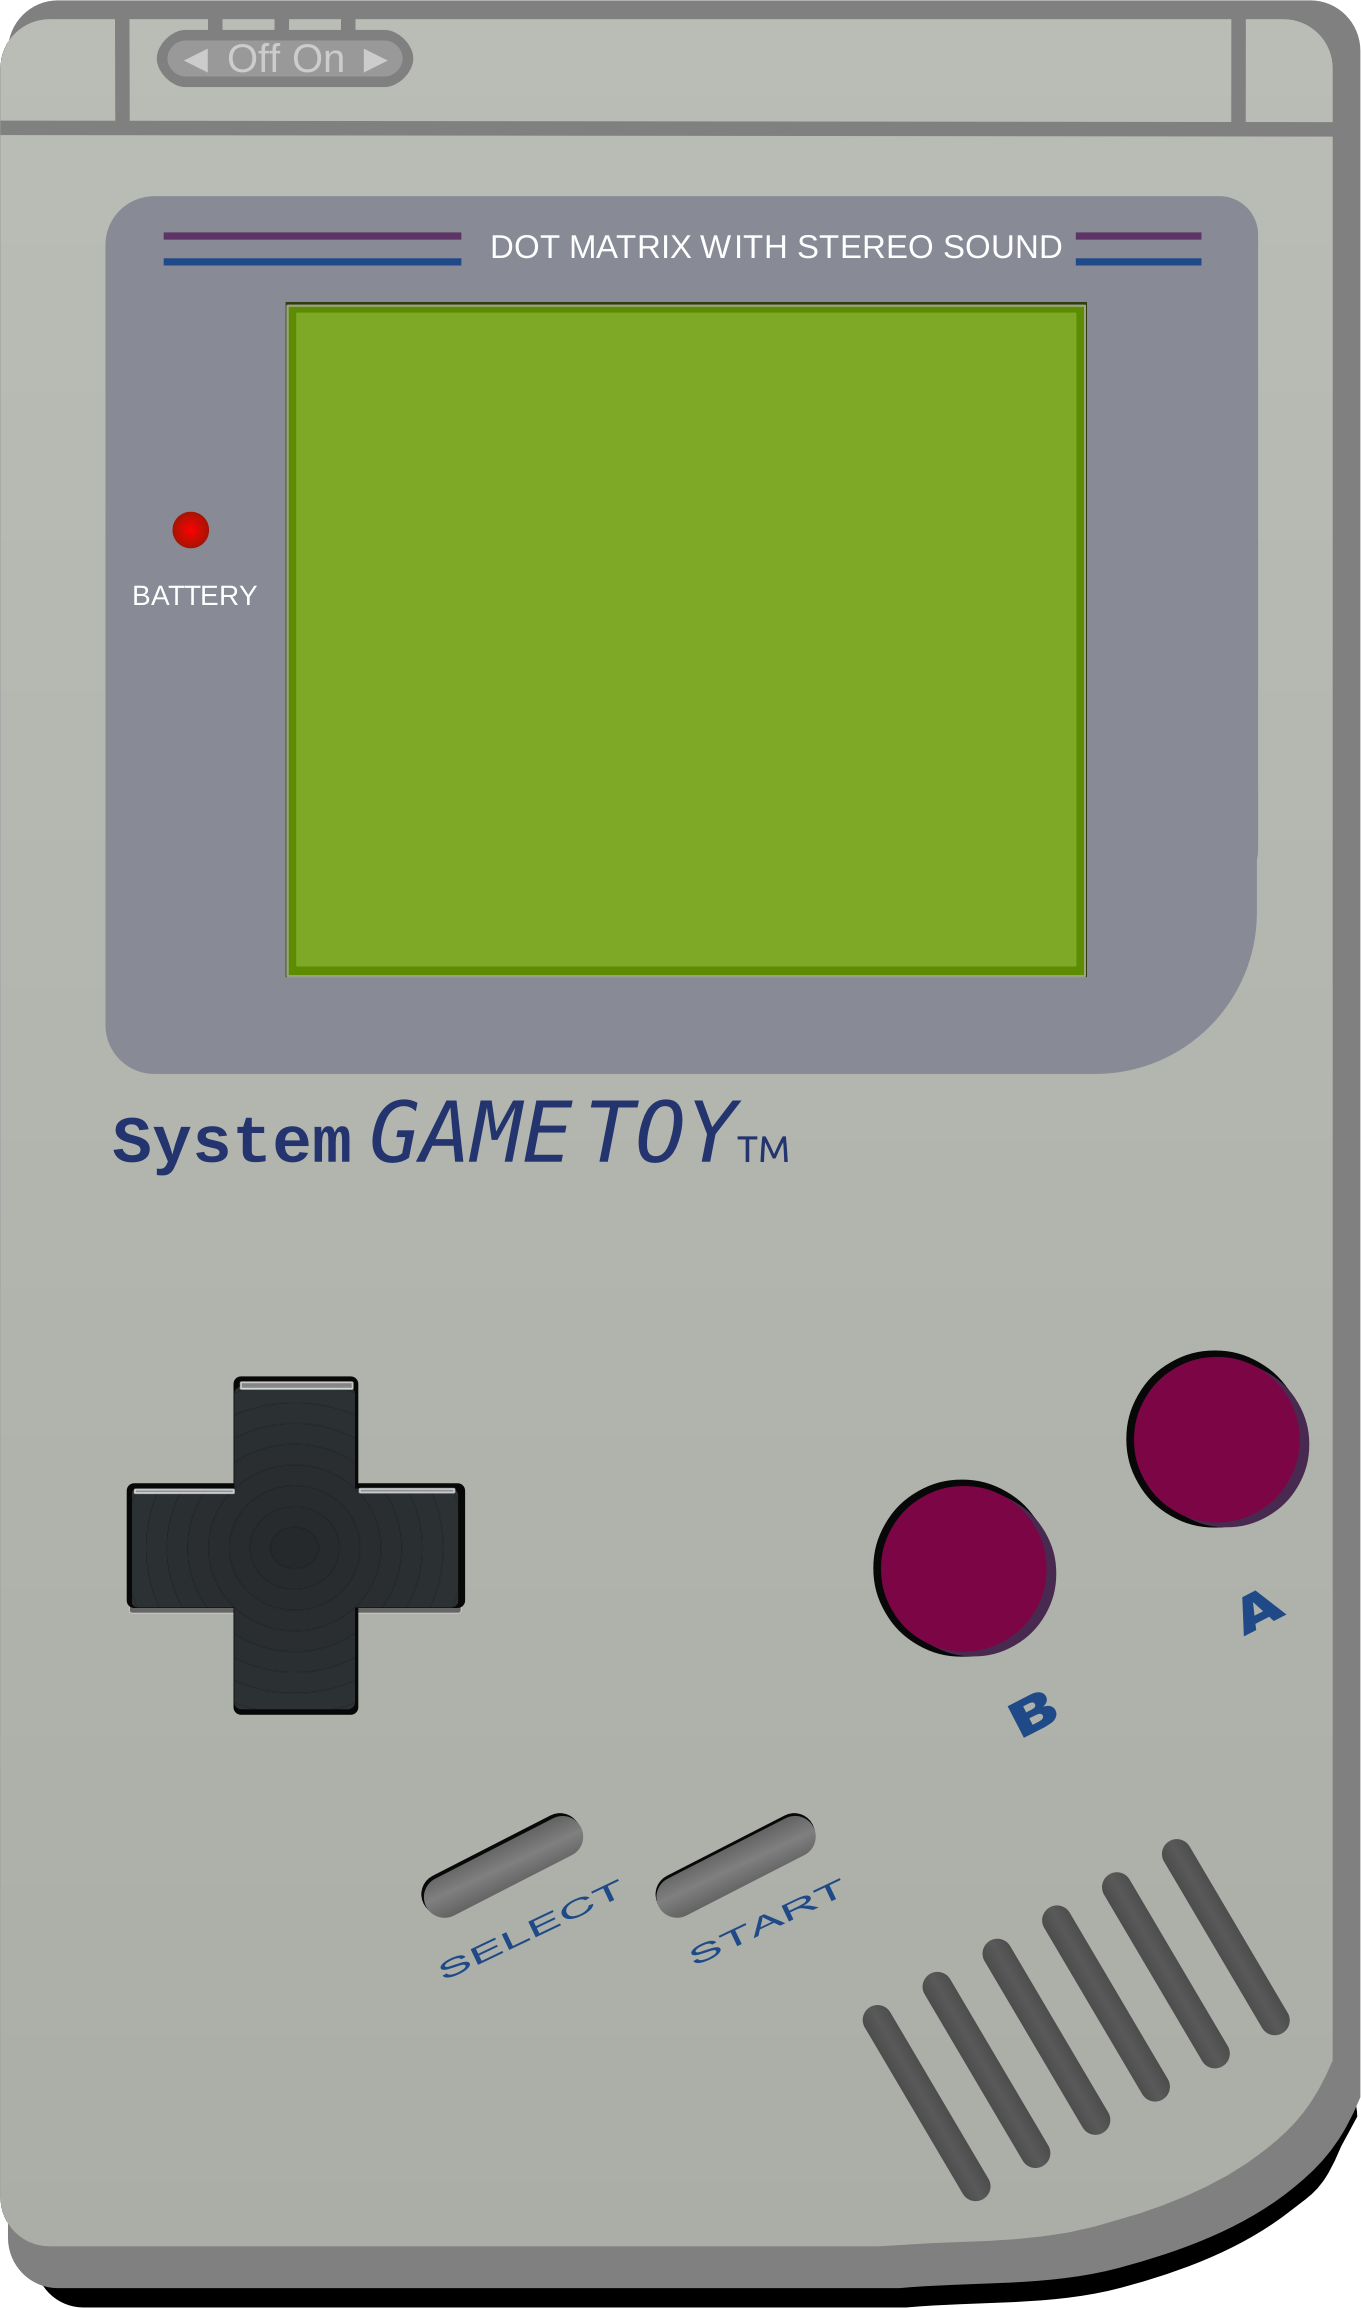 Gameboy by shunesburg69